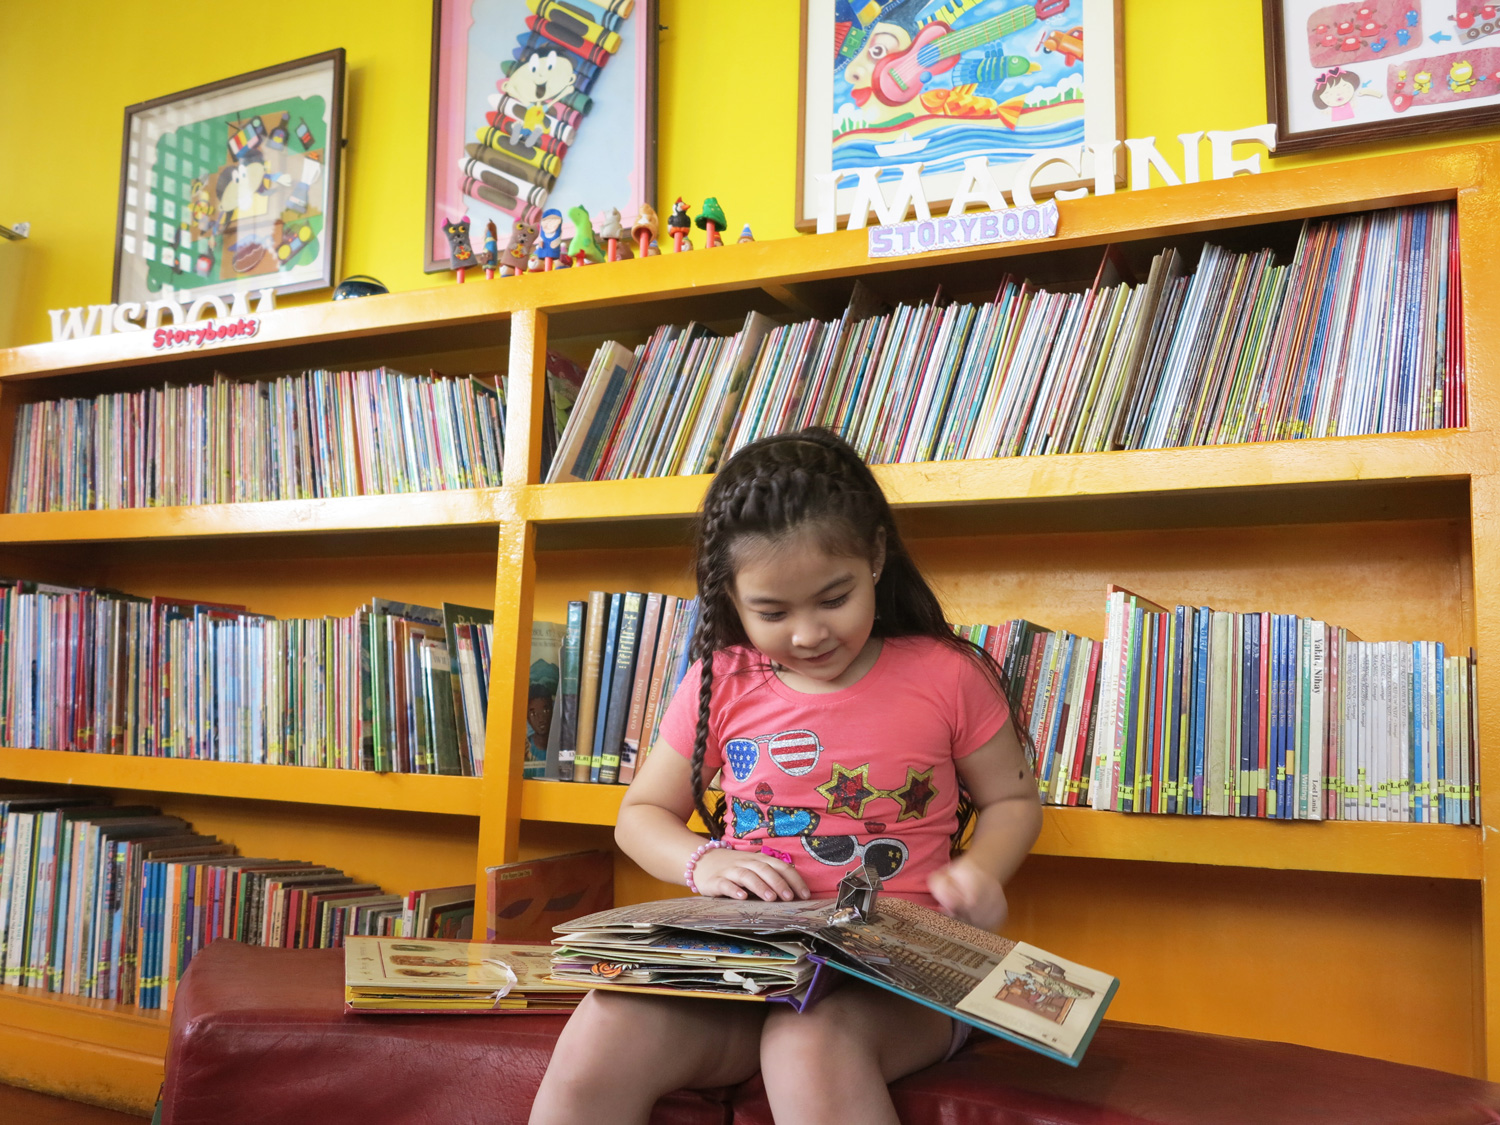 The Library (Photo courtesy of Museo Pambata)